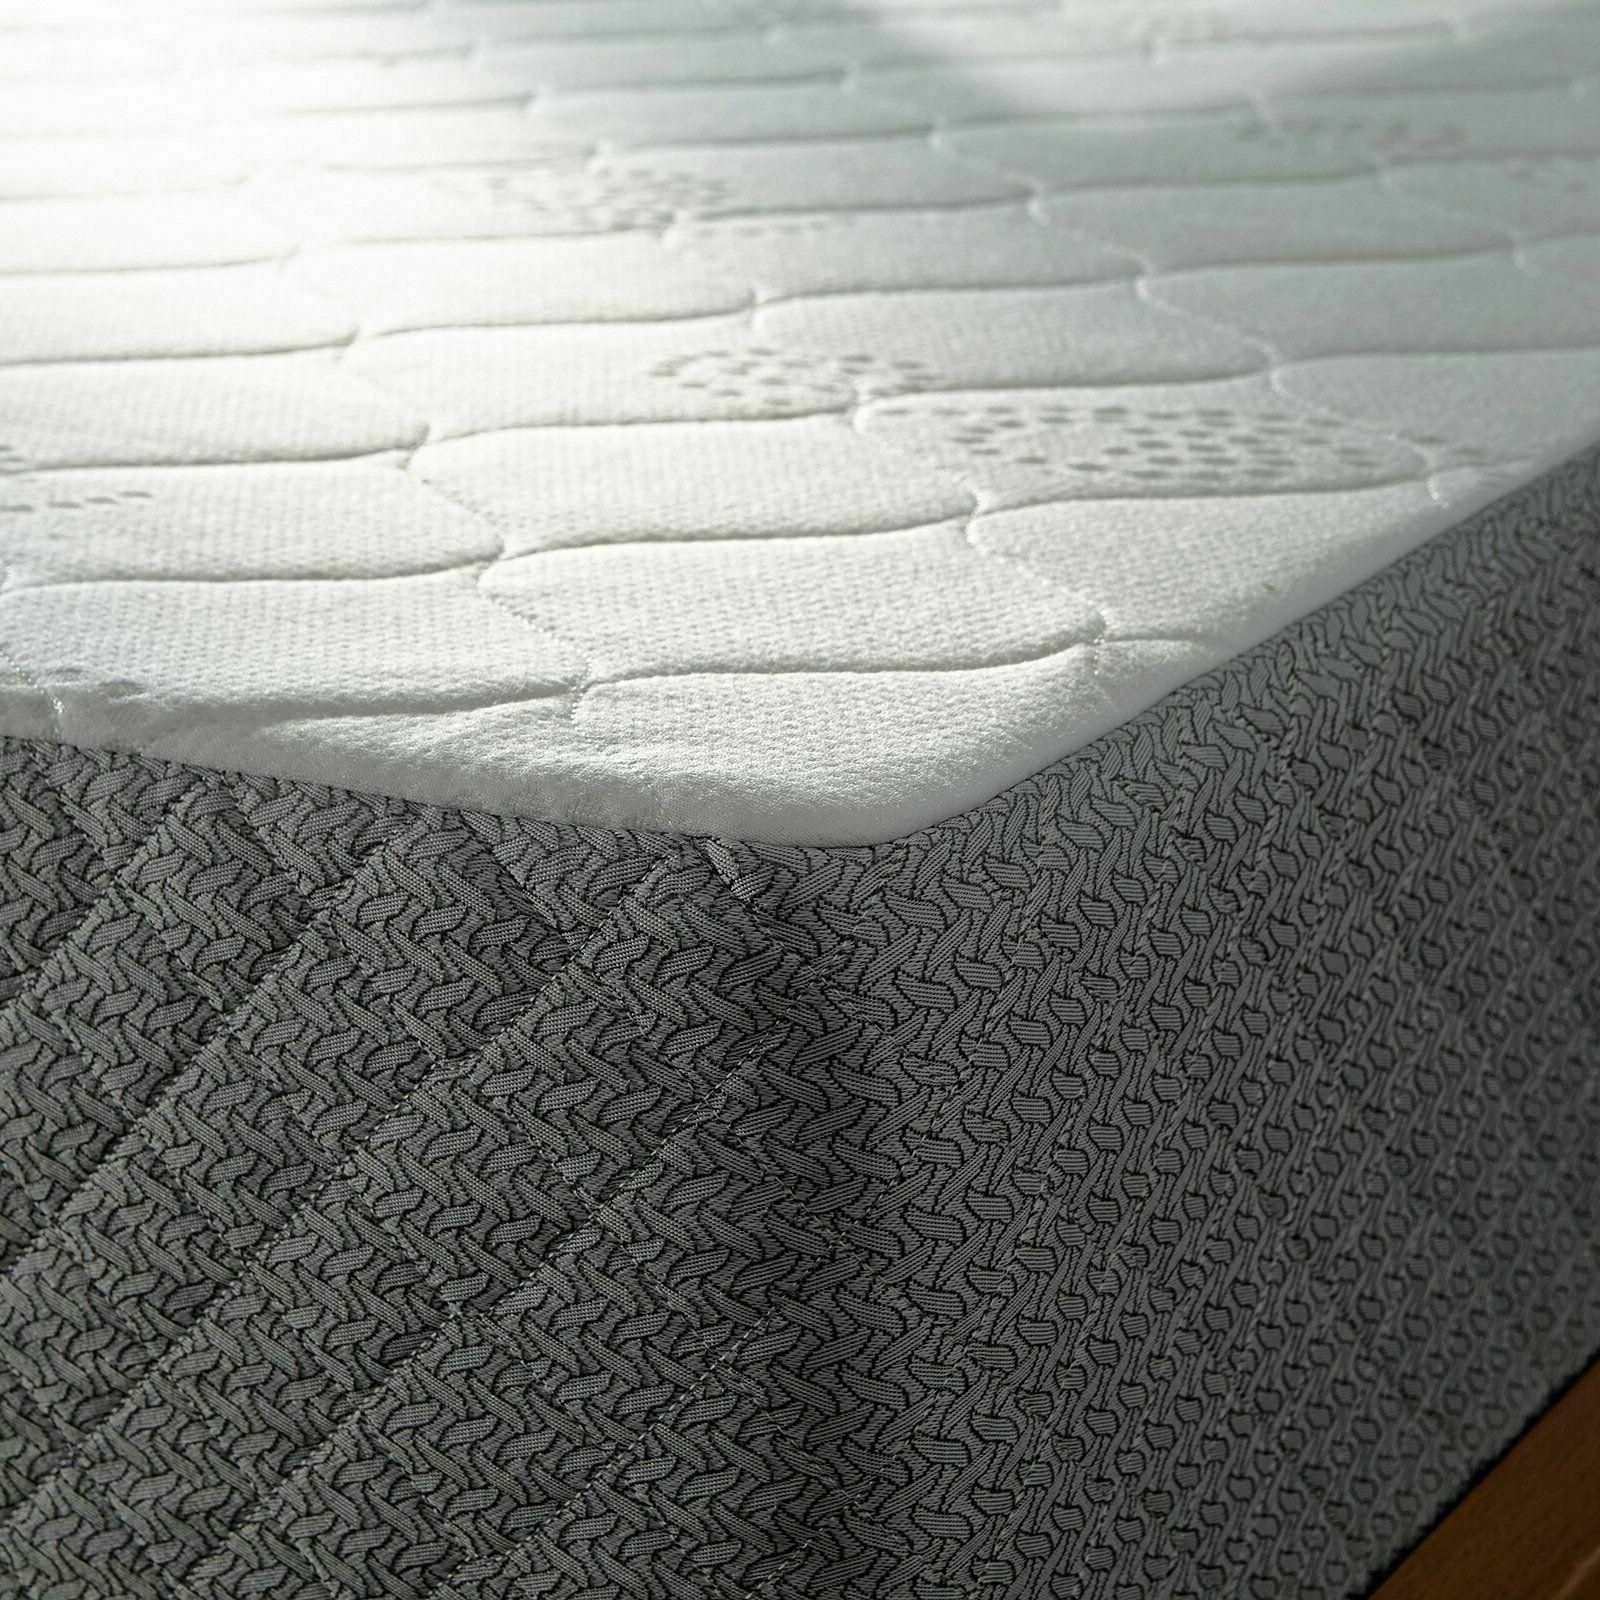 Sleep Cooling Foam Mattress, Bed in a Box